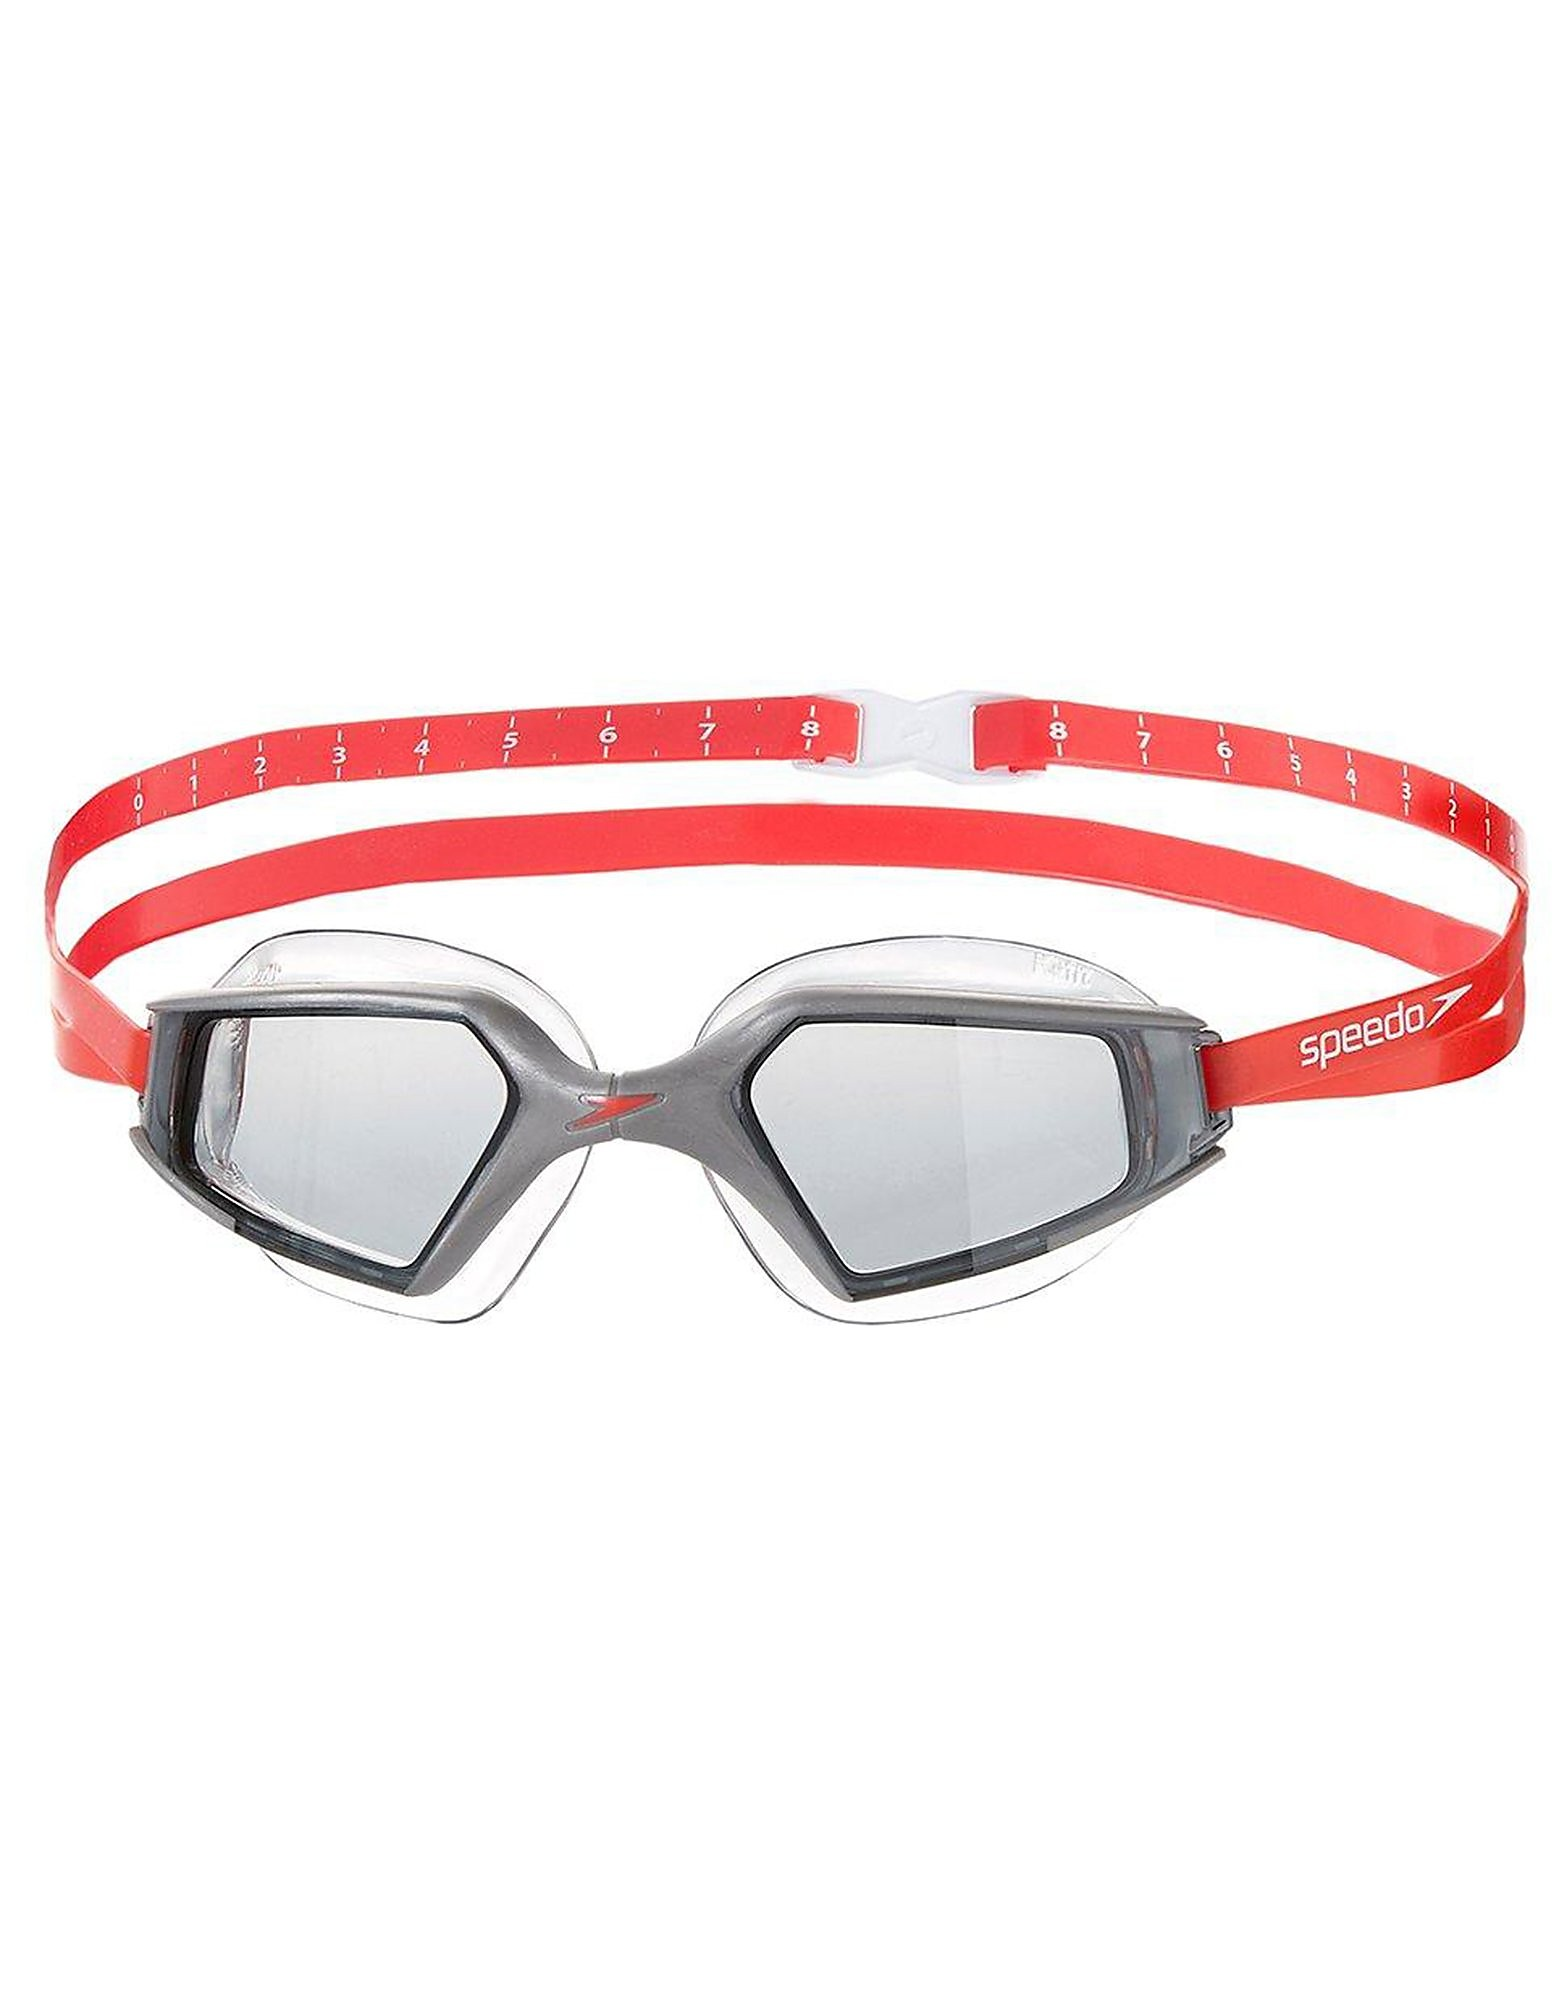 Speedo Aquapulse Max Goggles